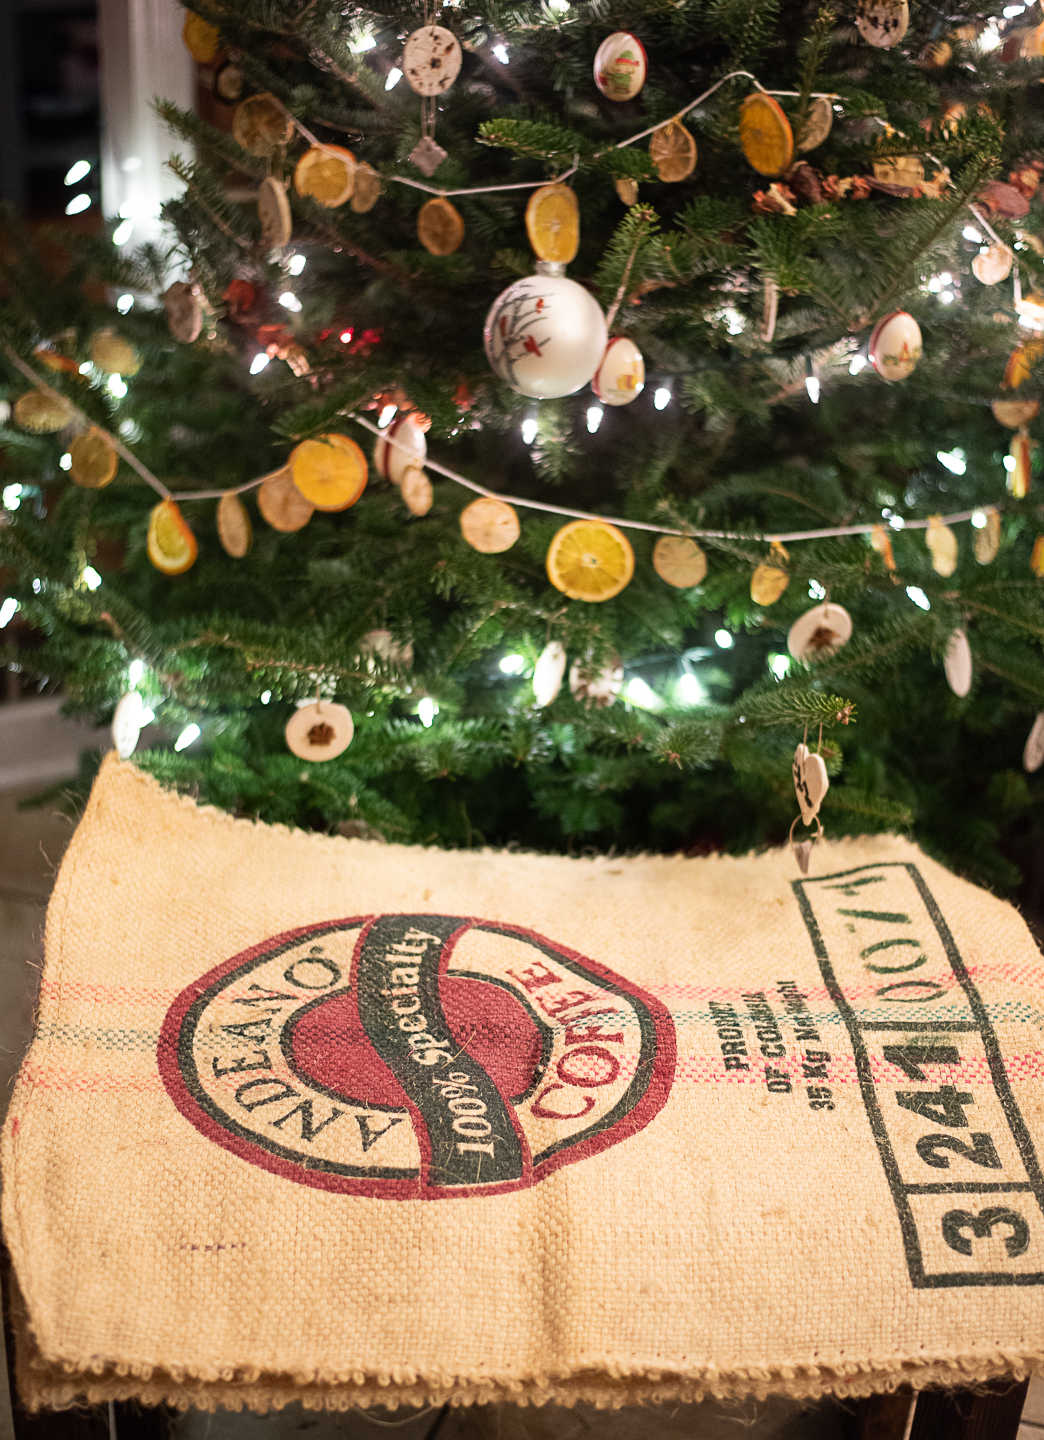 DIY Tabletop Christmas Tree Skirt from an Upcycled Burlap Coffee Sack